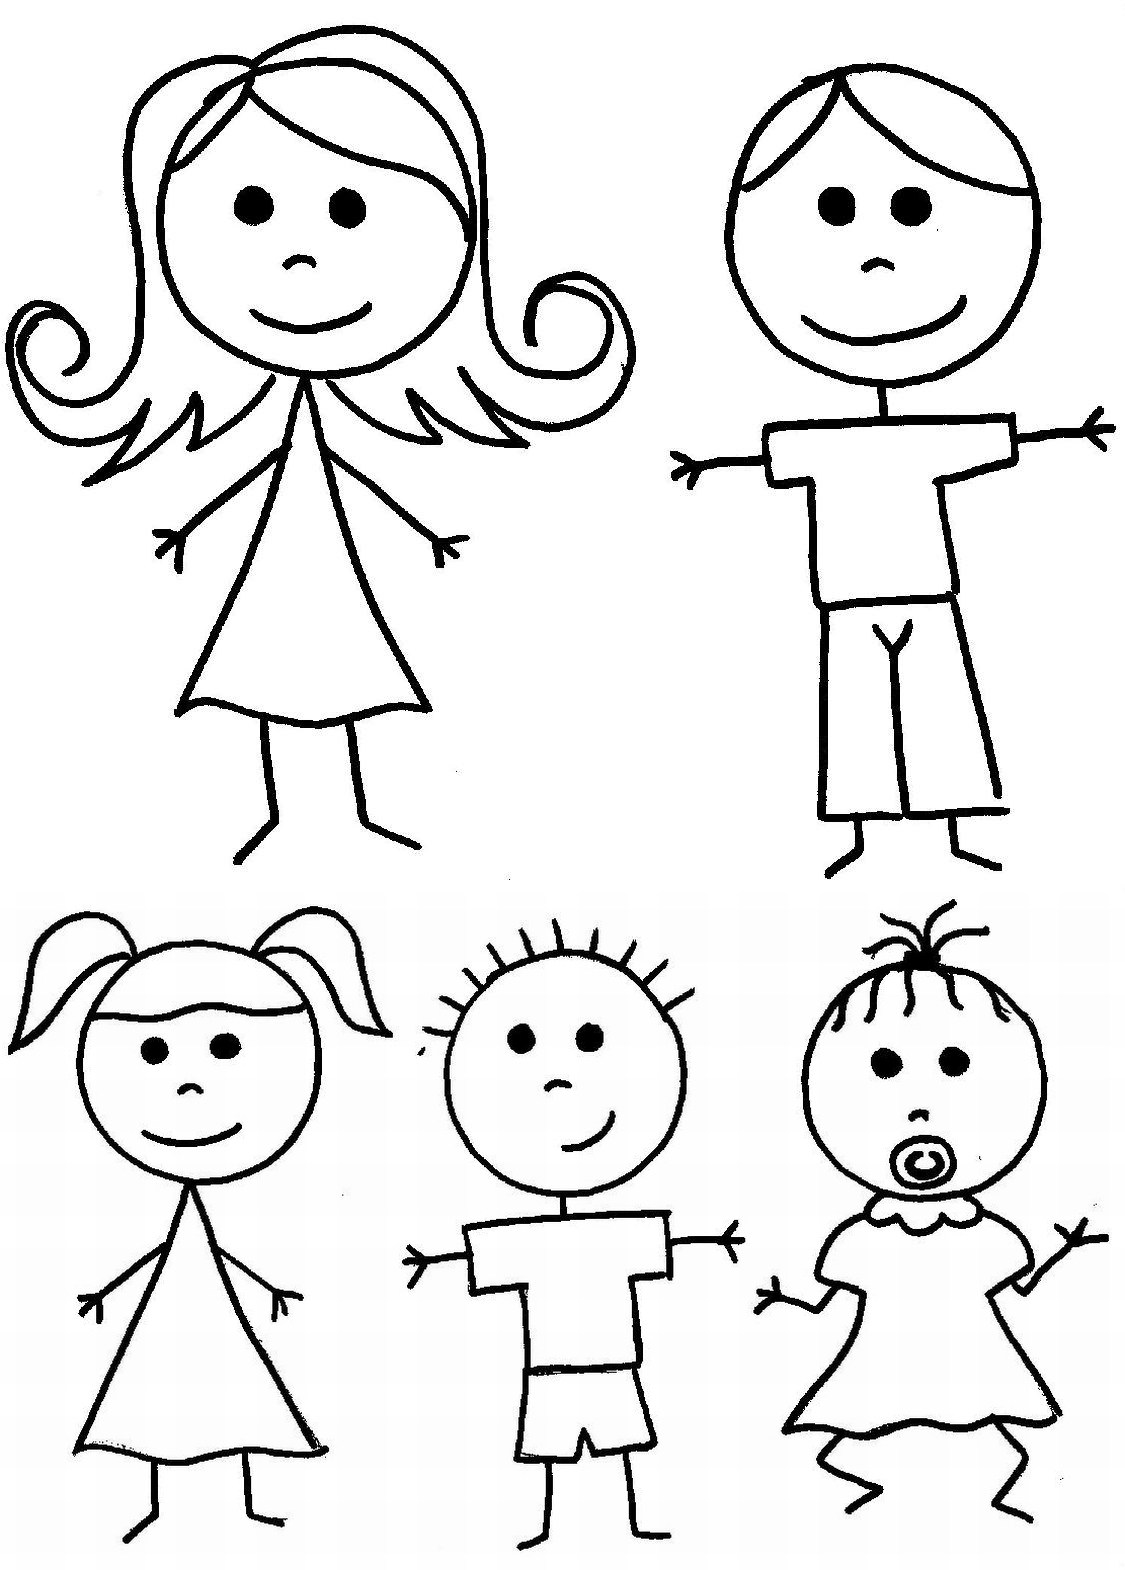 coloring picture people stick people coloring pages at getcoloringscom free picture coloring people